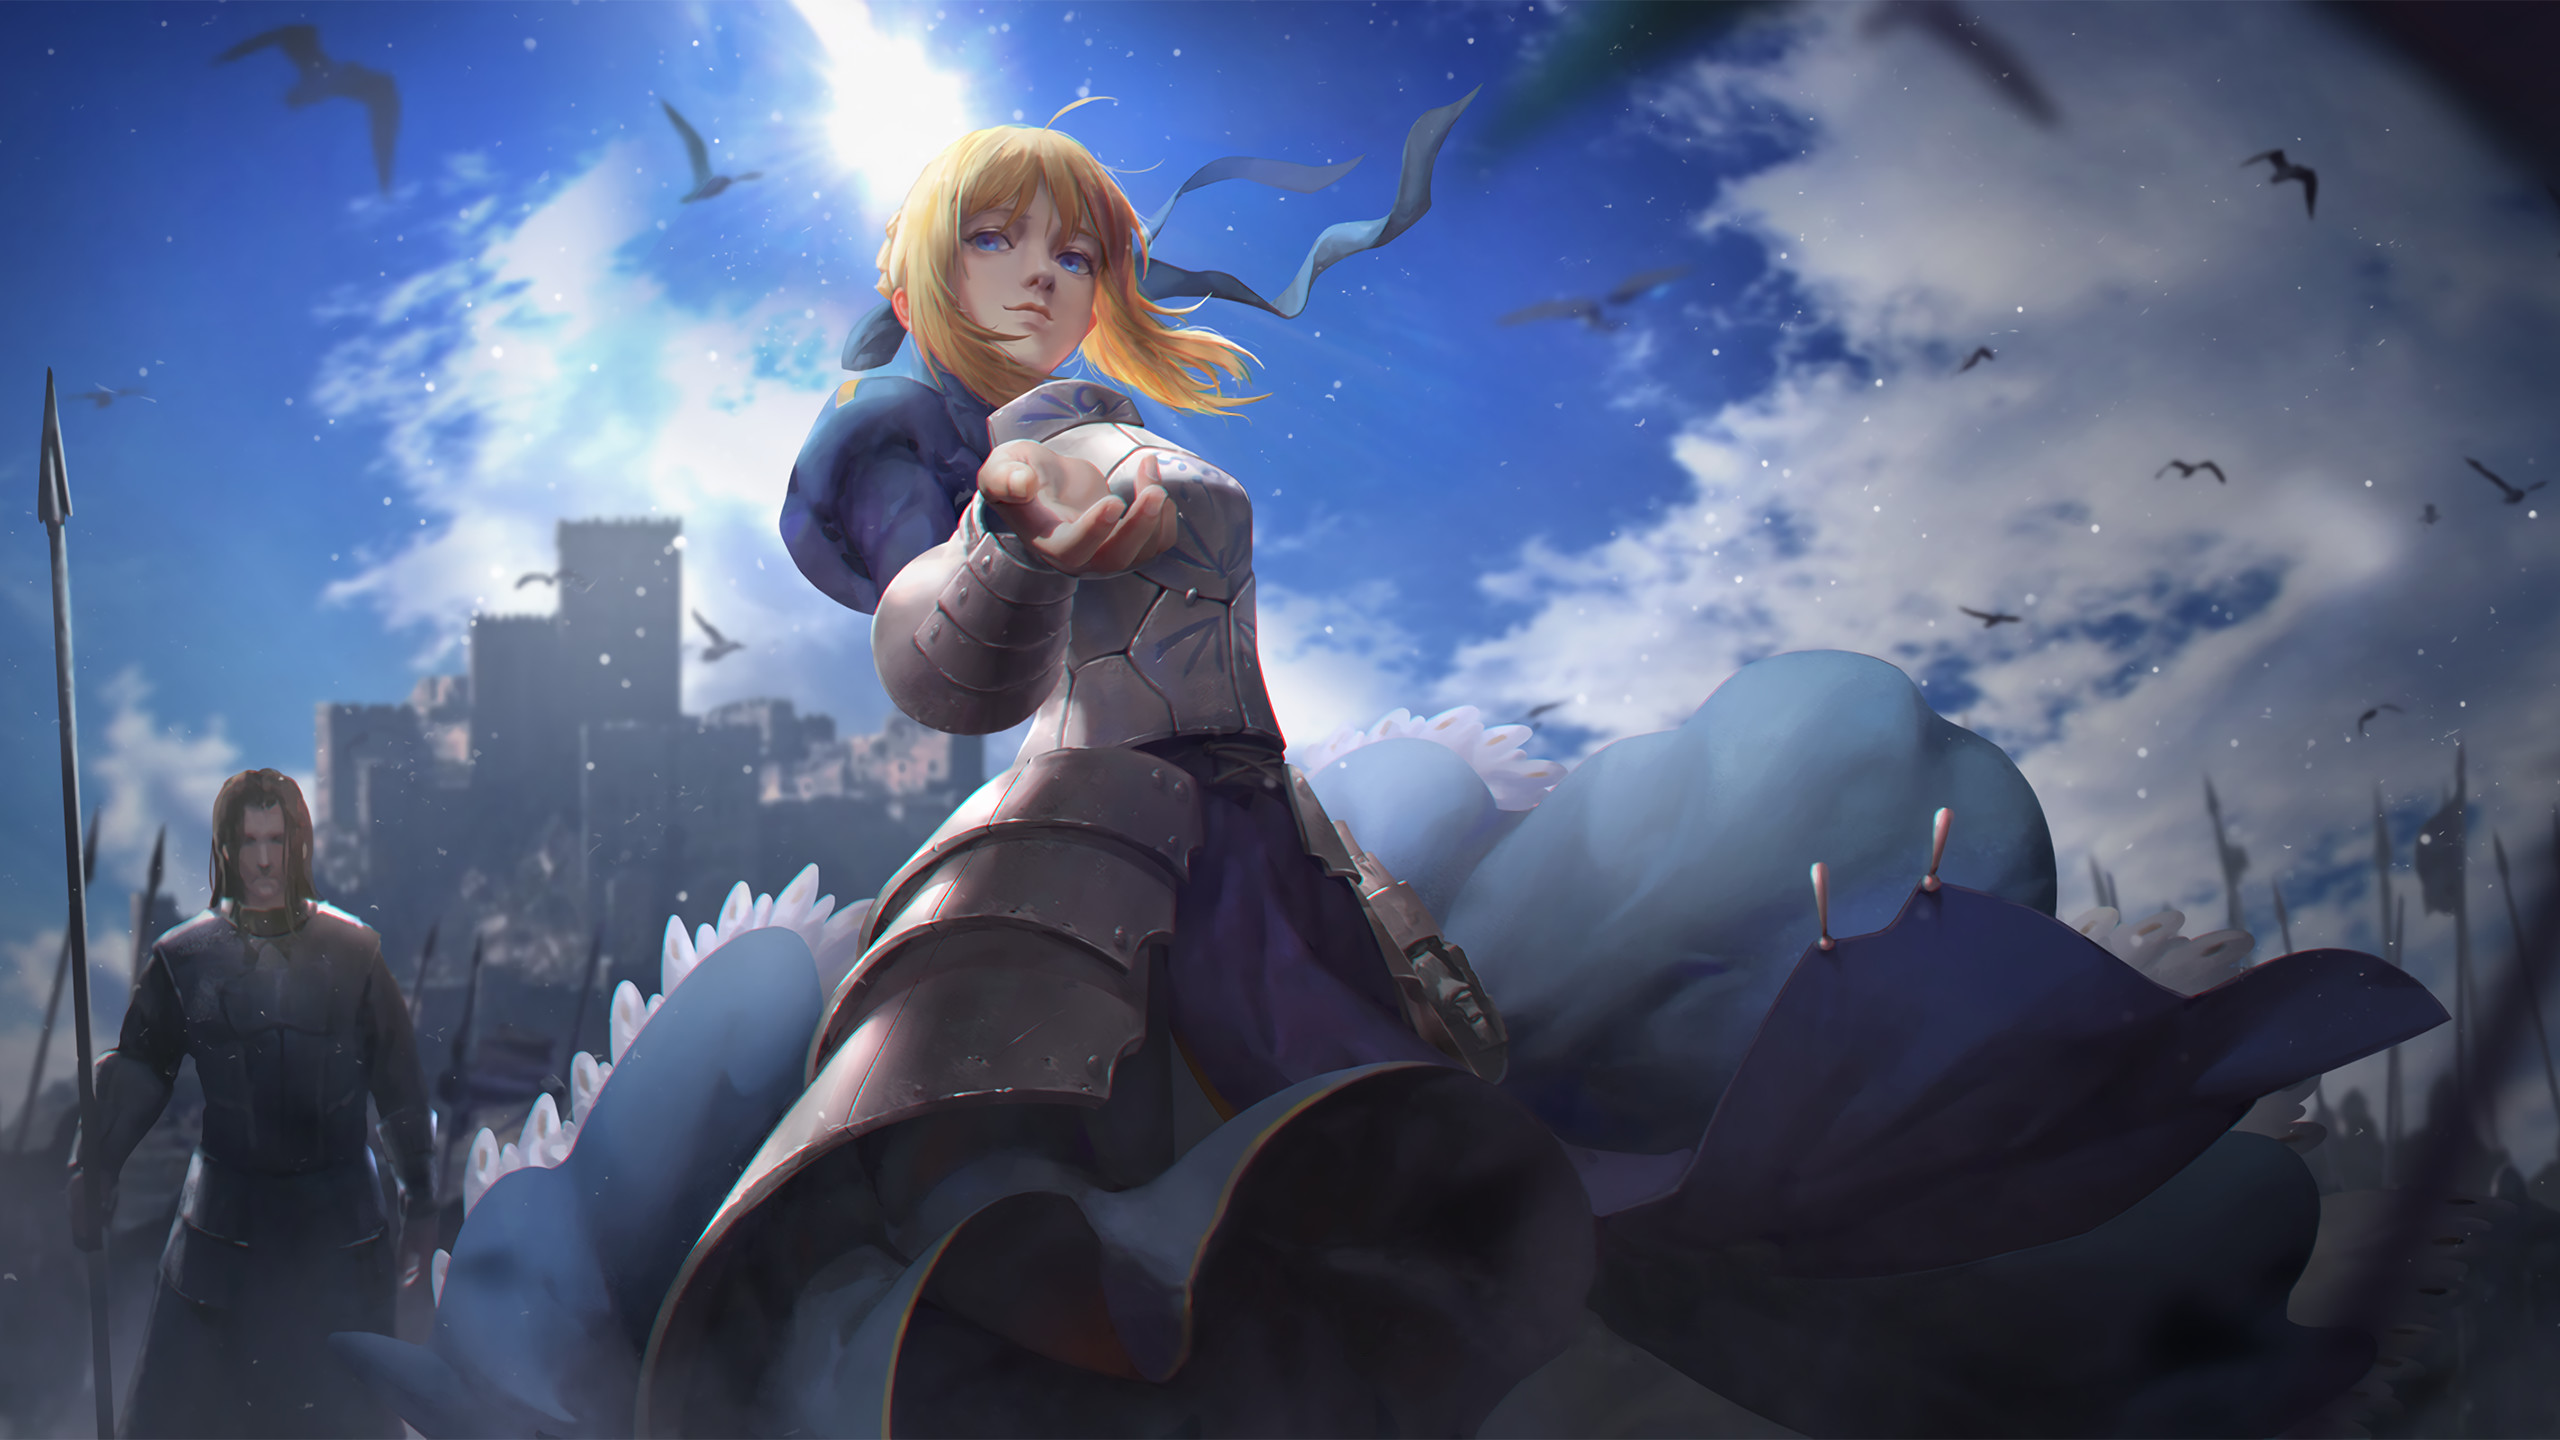 Anime anime girls Fate Series Saber knight armor castle